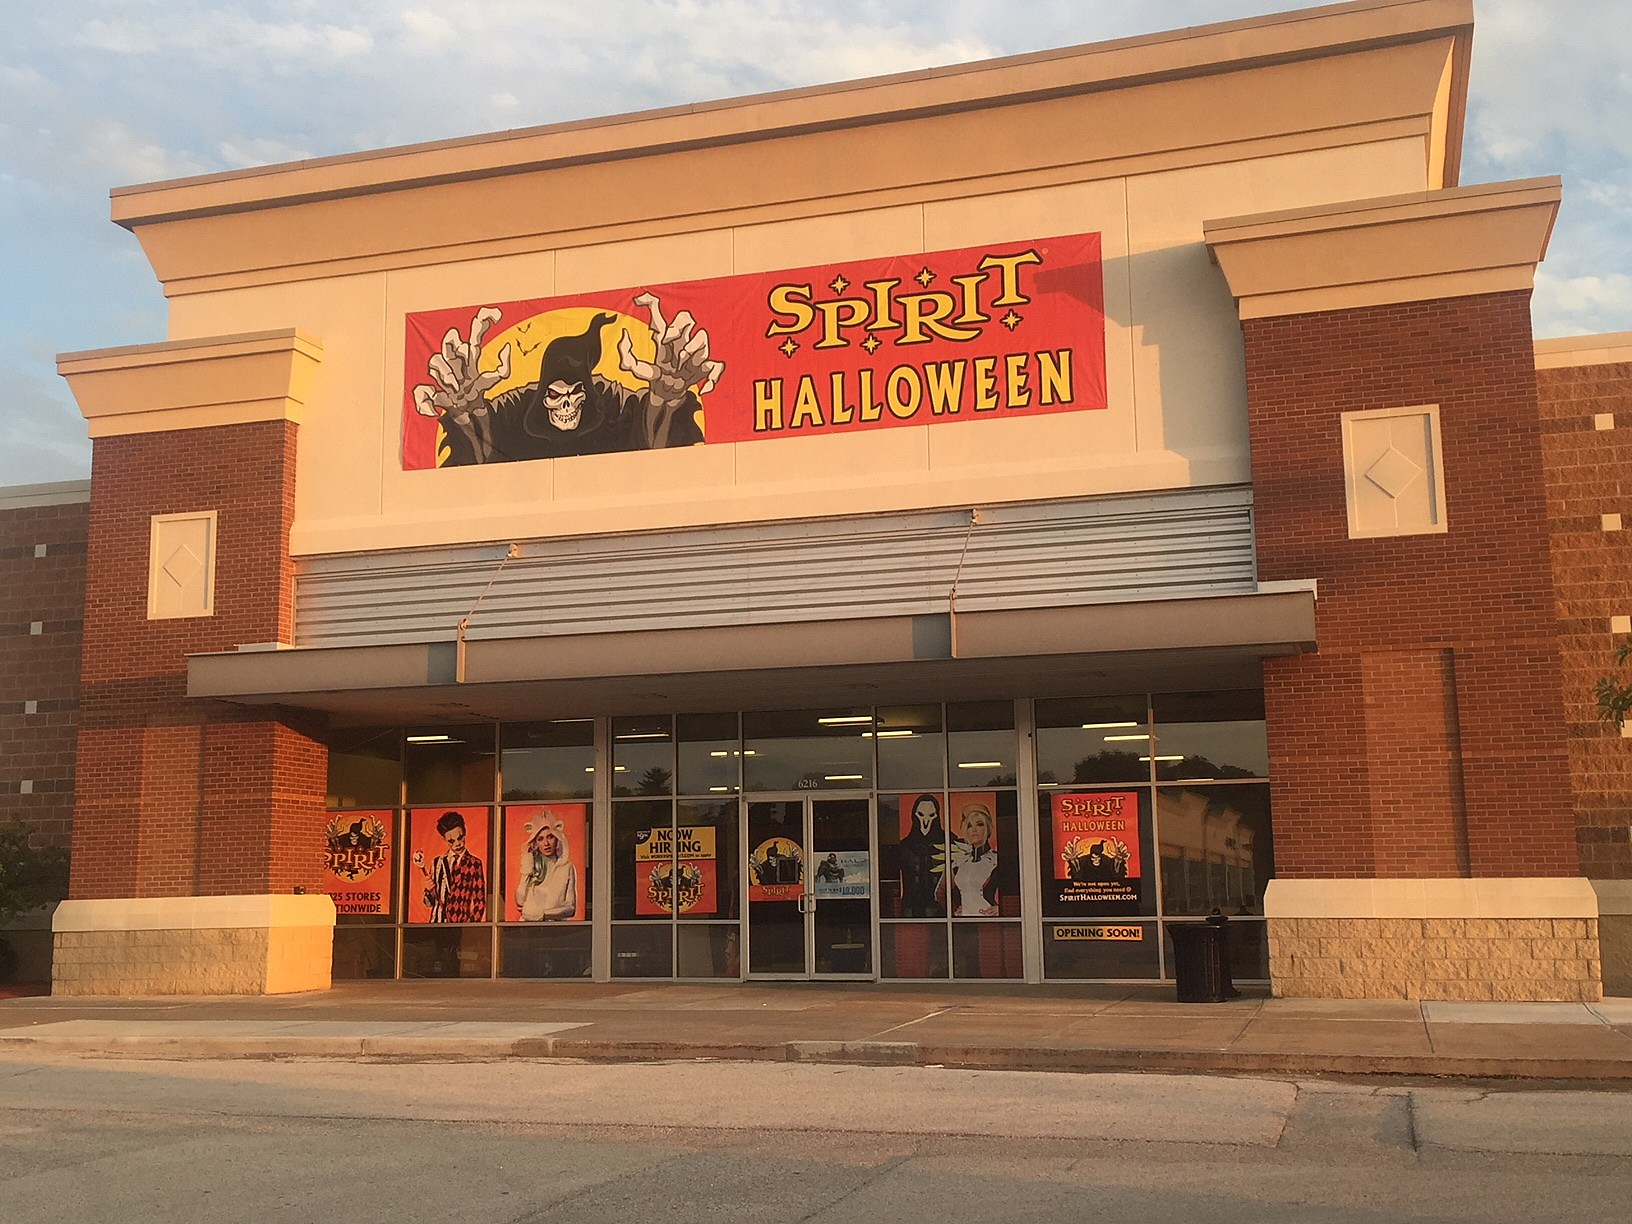 hannibal jaycees 2018 haunted house opens next month